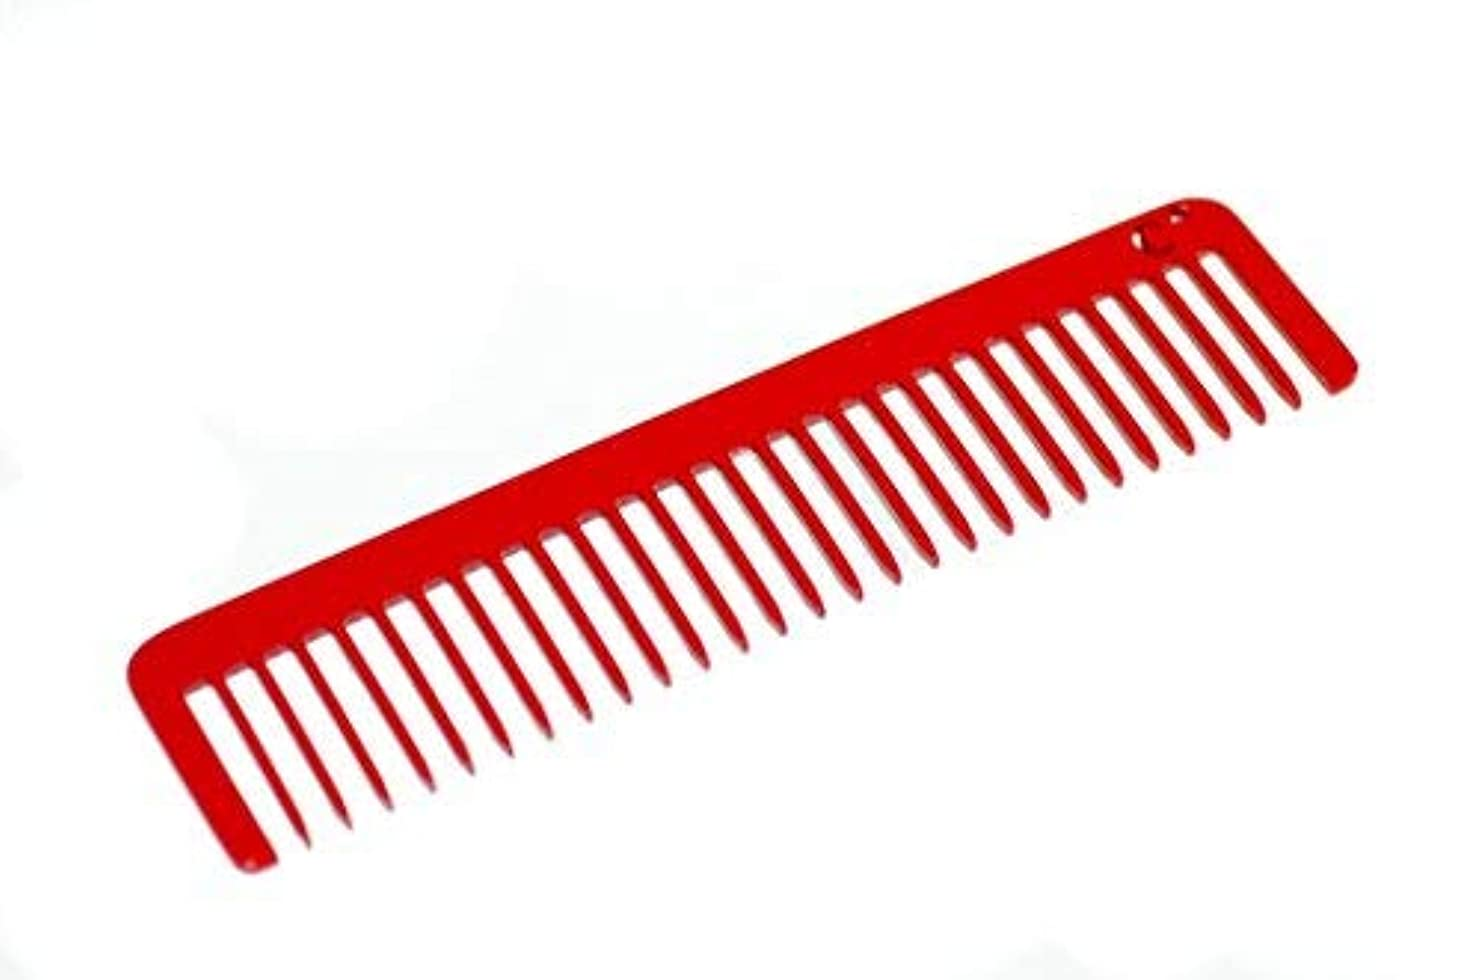 燃やす圧縮気候Chicago Comb Long Model No. 5 Cardinal Red, 5.5 inches (14 cm) long, Made in USA, wide-tooth comb, ultra smooth...